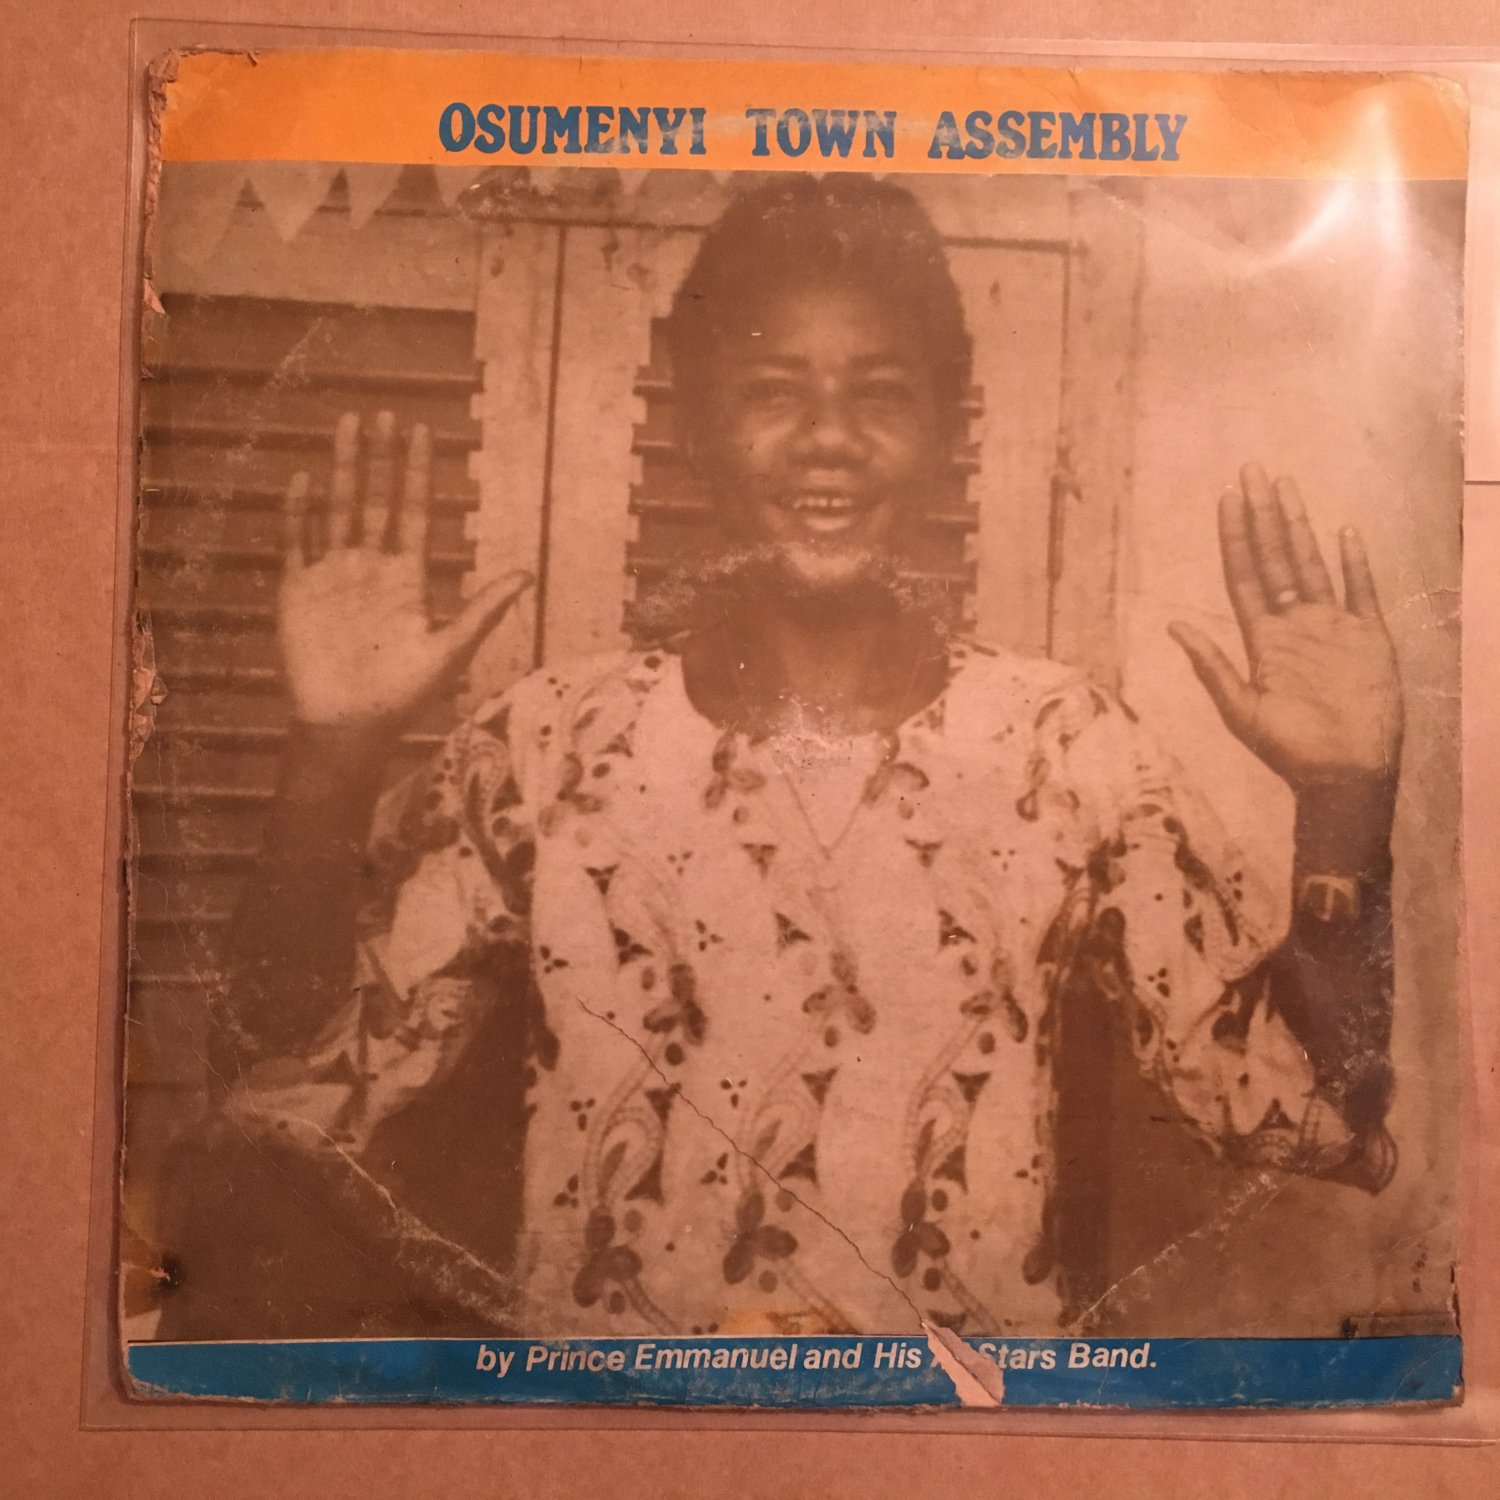 PRINCE EMMANUEL & HIS ALL STARS BAND LP osumenyi town assembly NIGERIA mp3 LISTEN